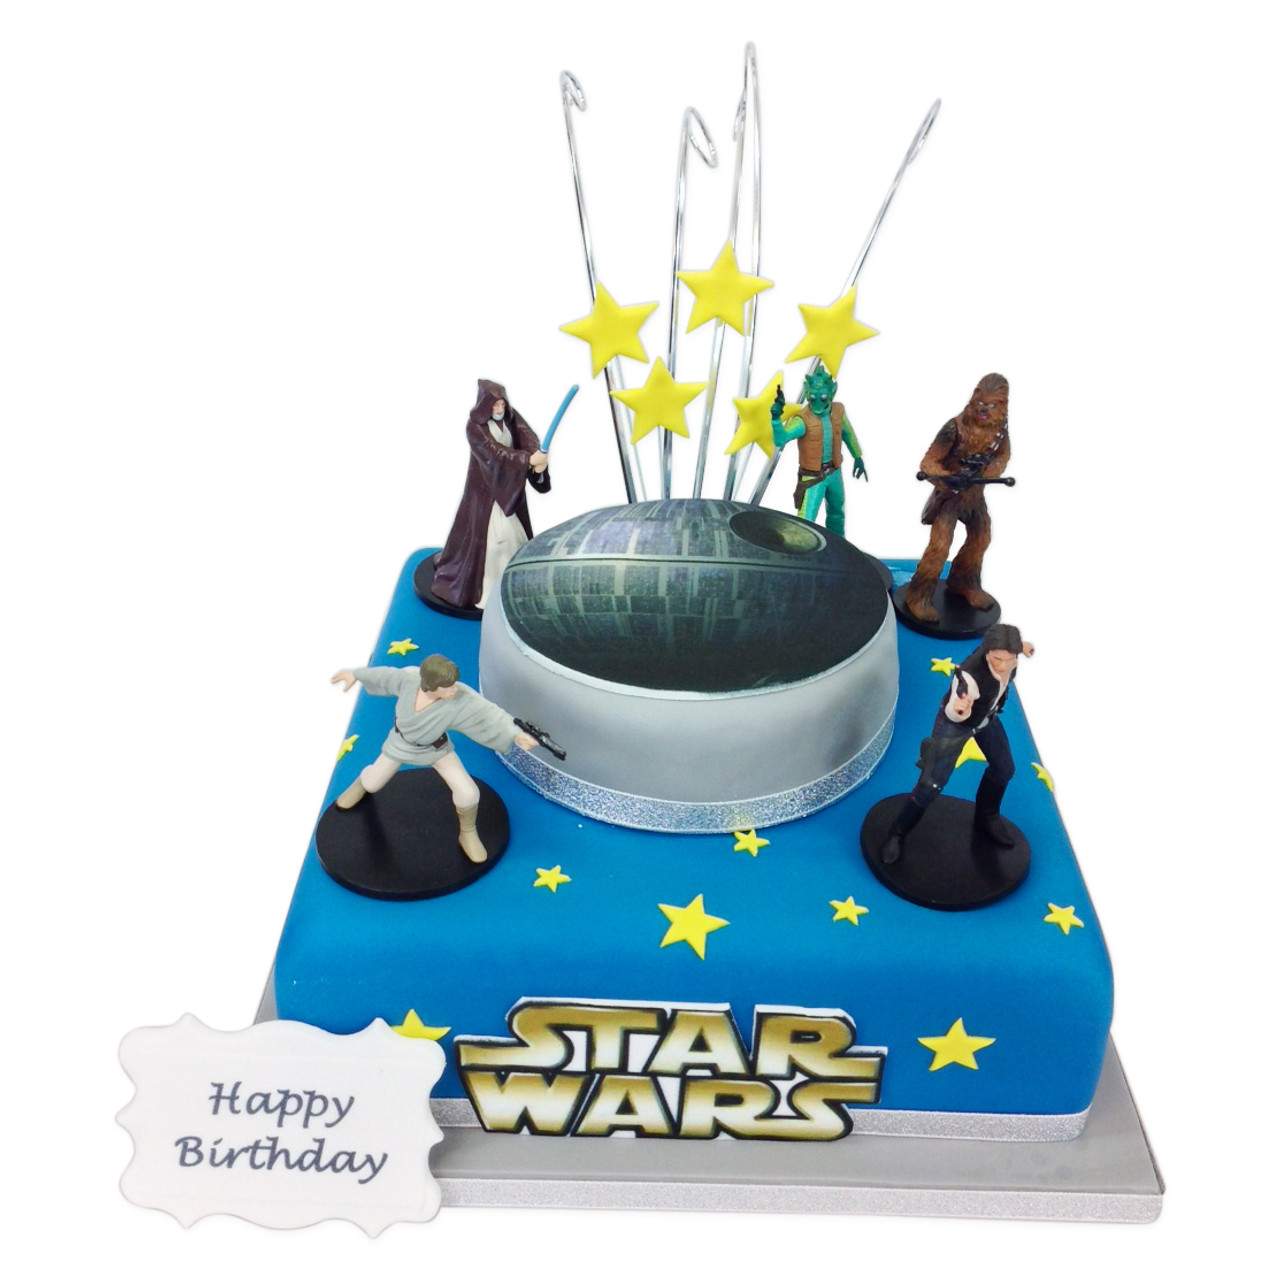 Fantastic Star Wars Cake Luxury Birthday Cakes The Brilliant Bakers Personalised Birthday Cards Paralily Jamesorg